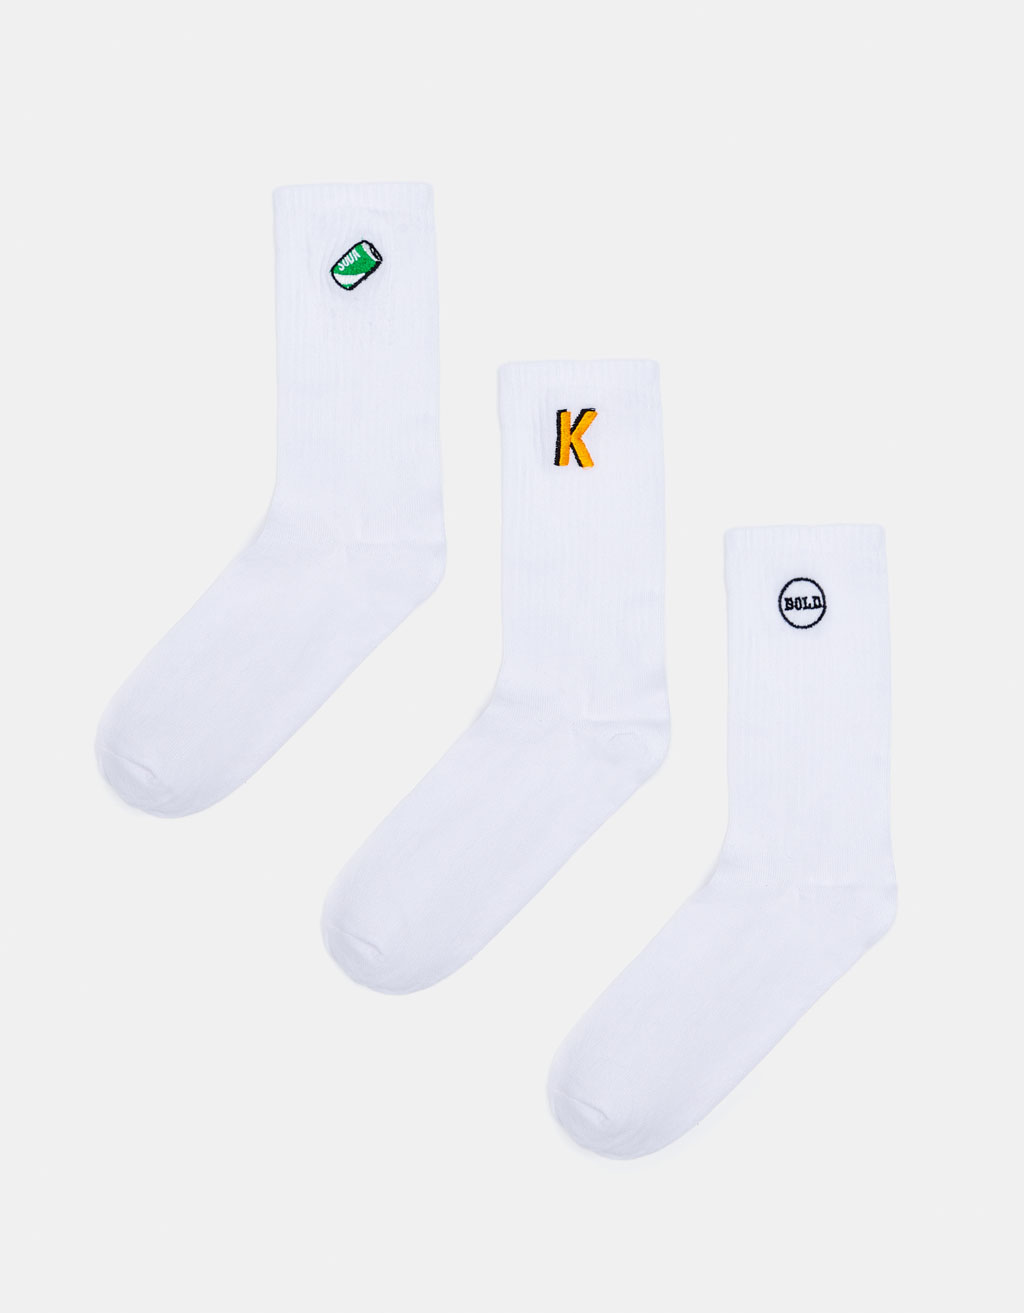 3-pack of embroidered socks.